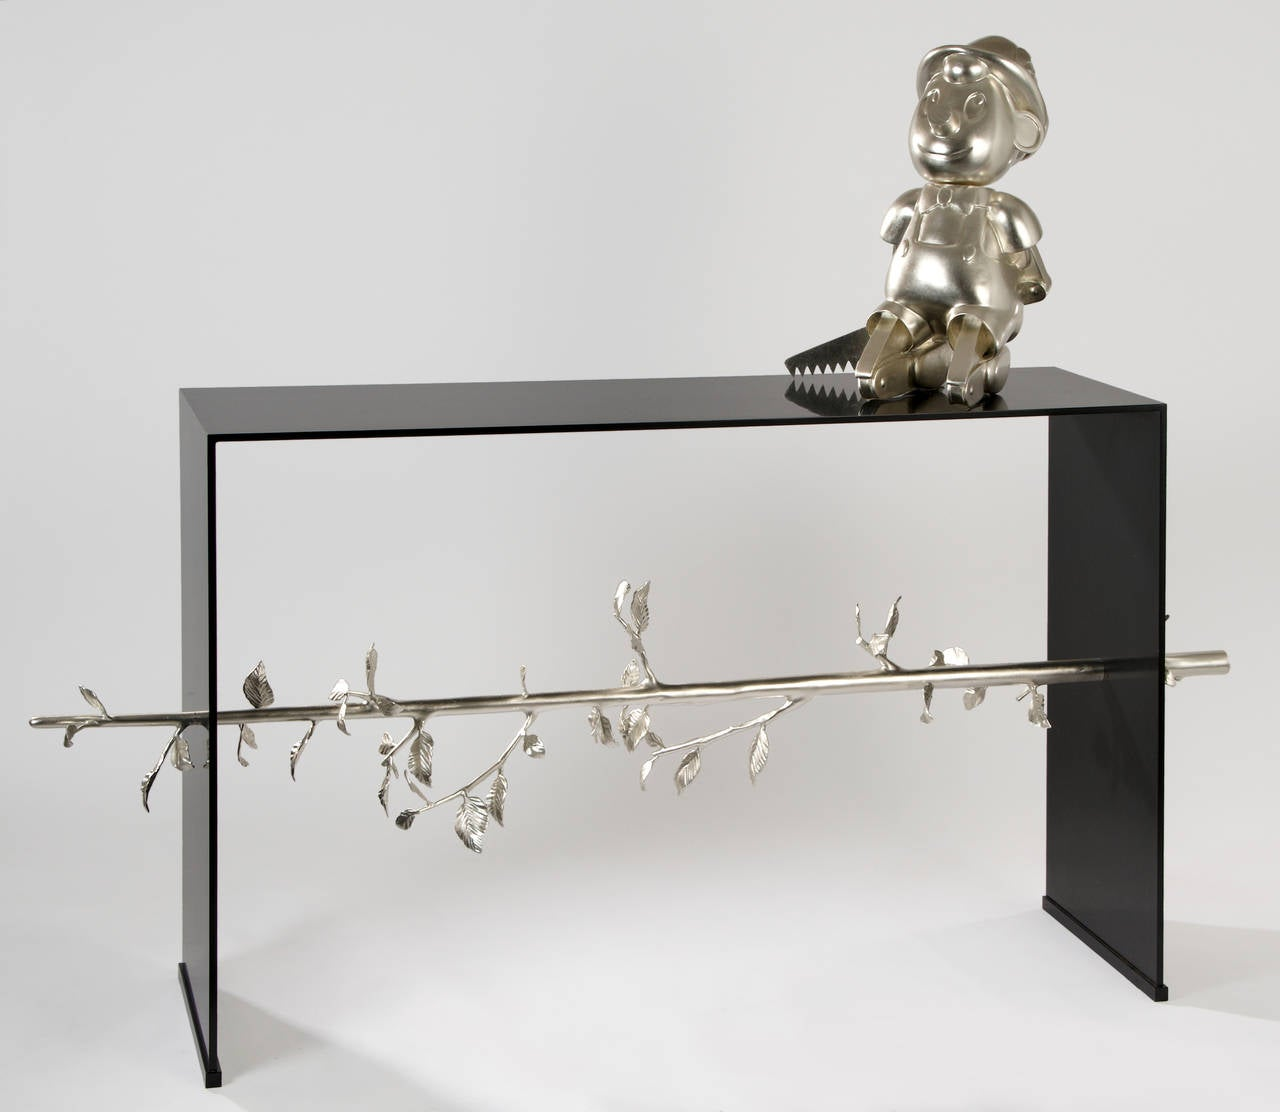 Console pinocchio for sale at 1stdibs for Pinocchio consolle